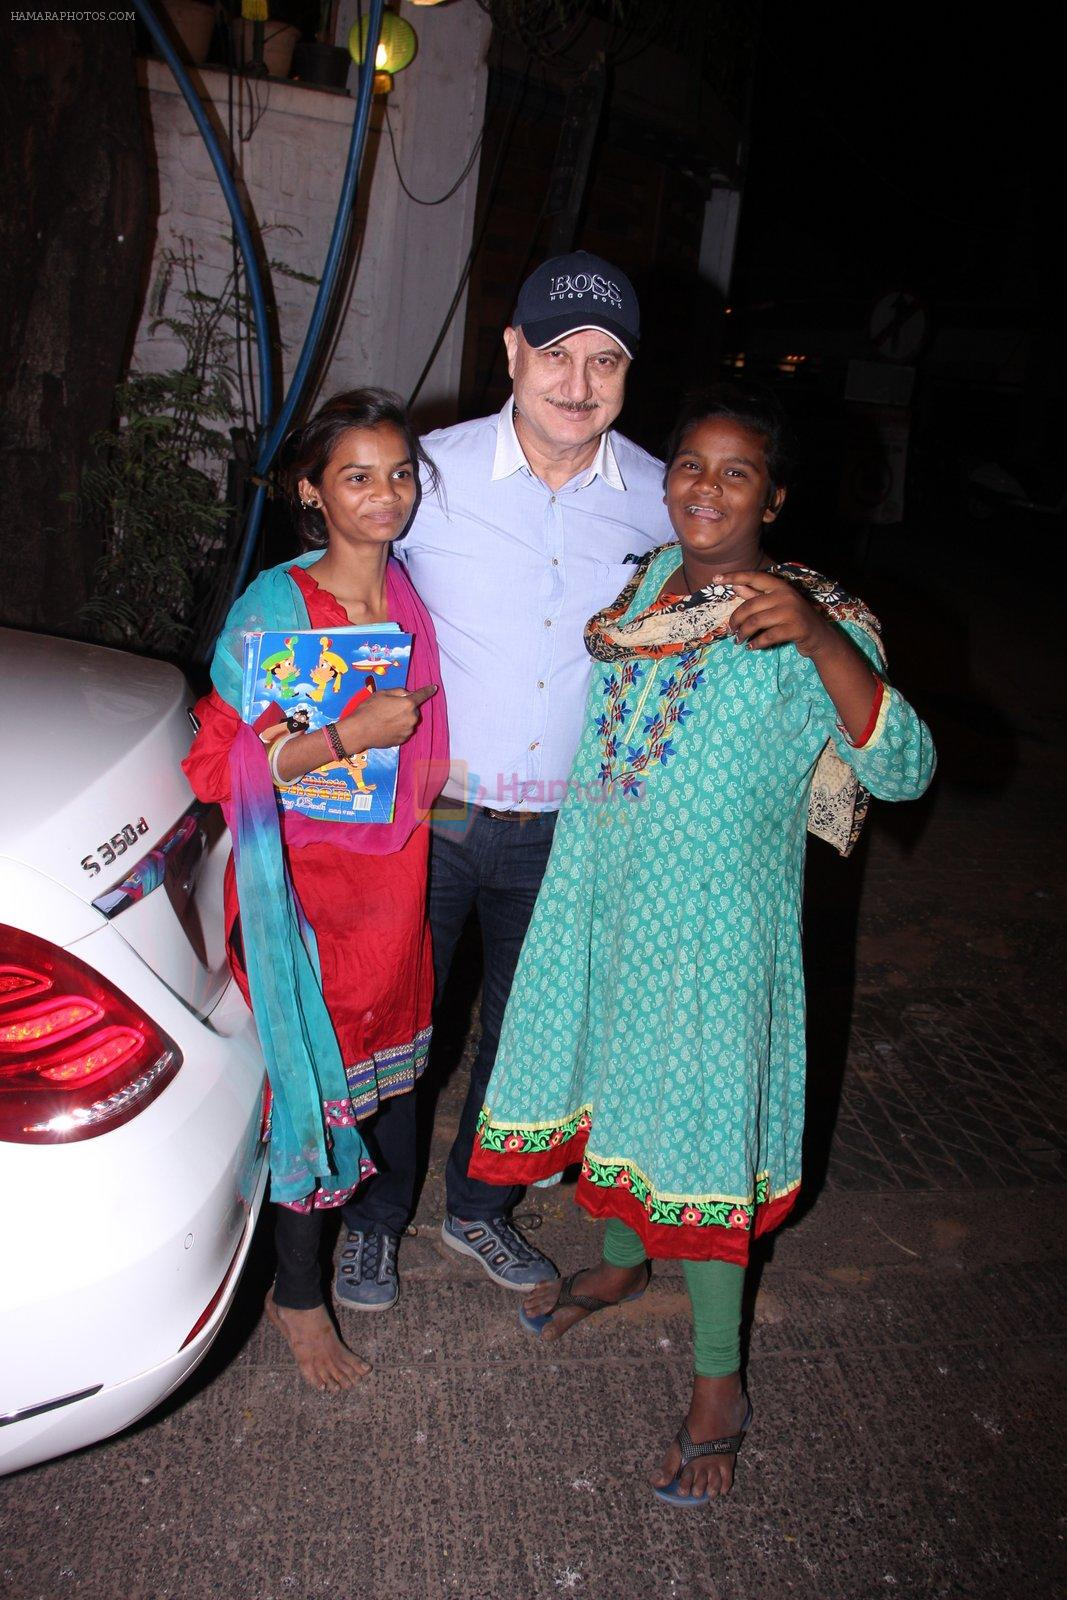 Anupam Kher snapepd with street kids on 30th Dec 2016